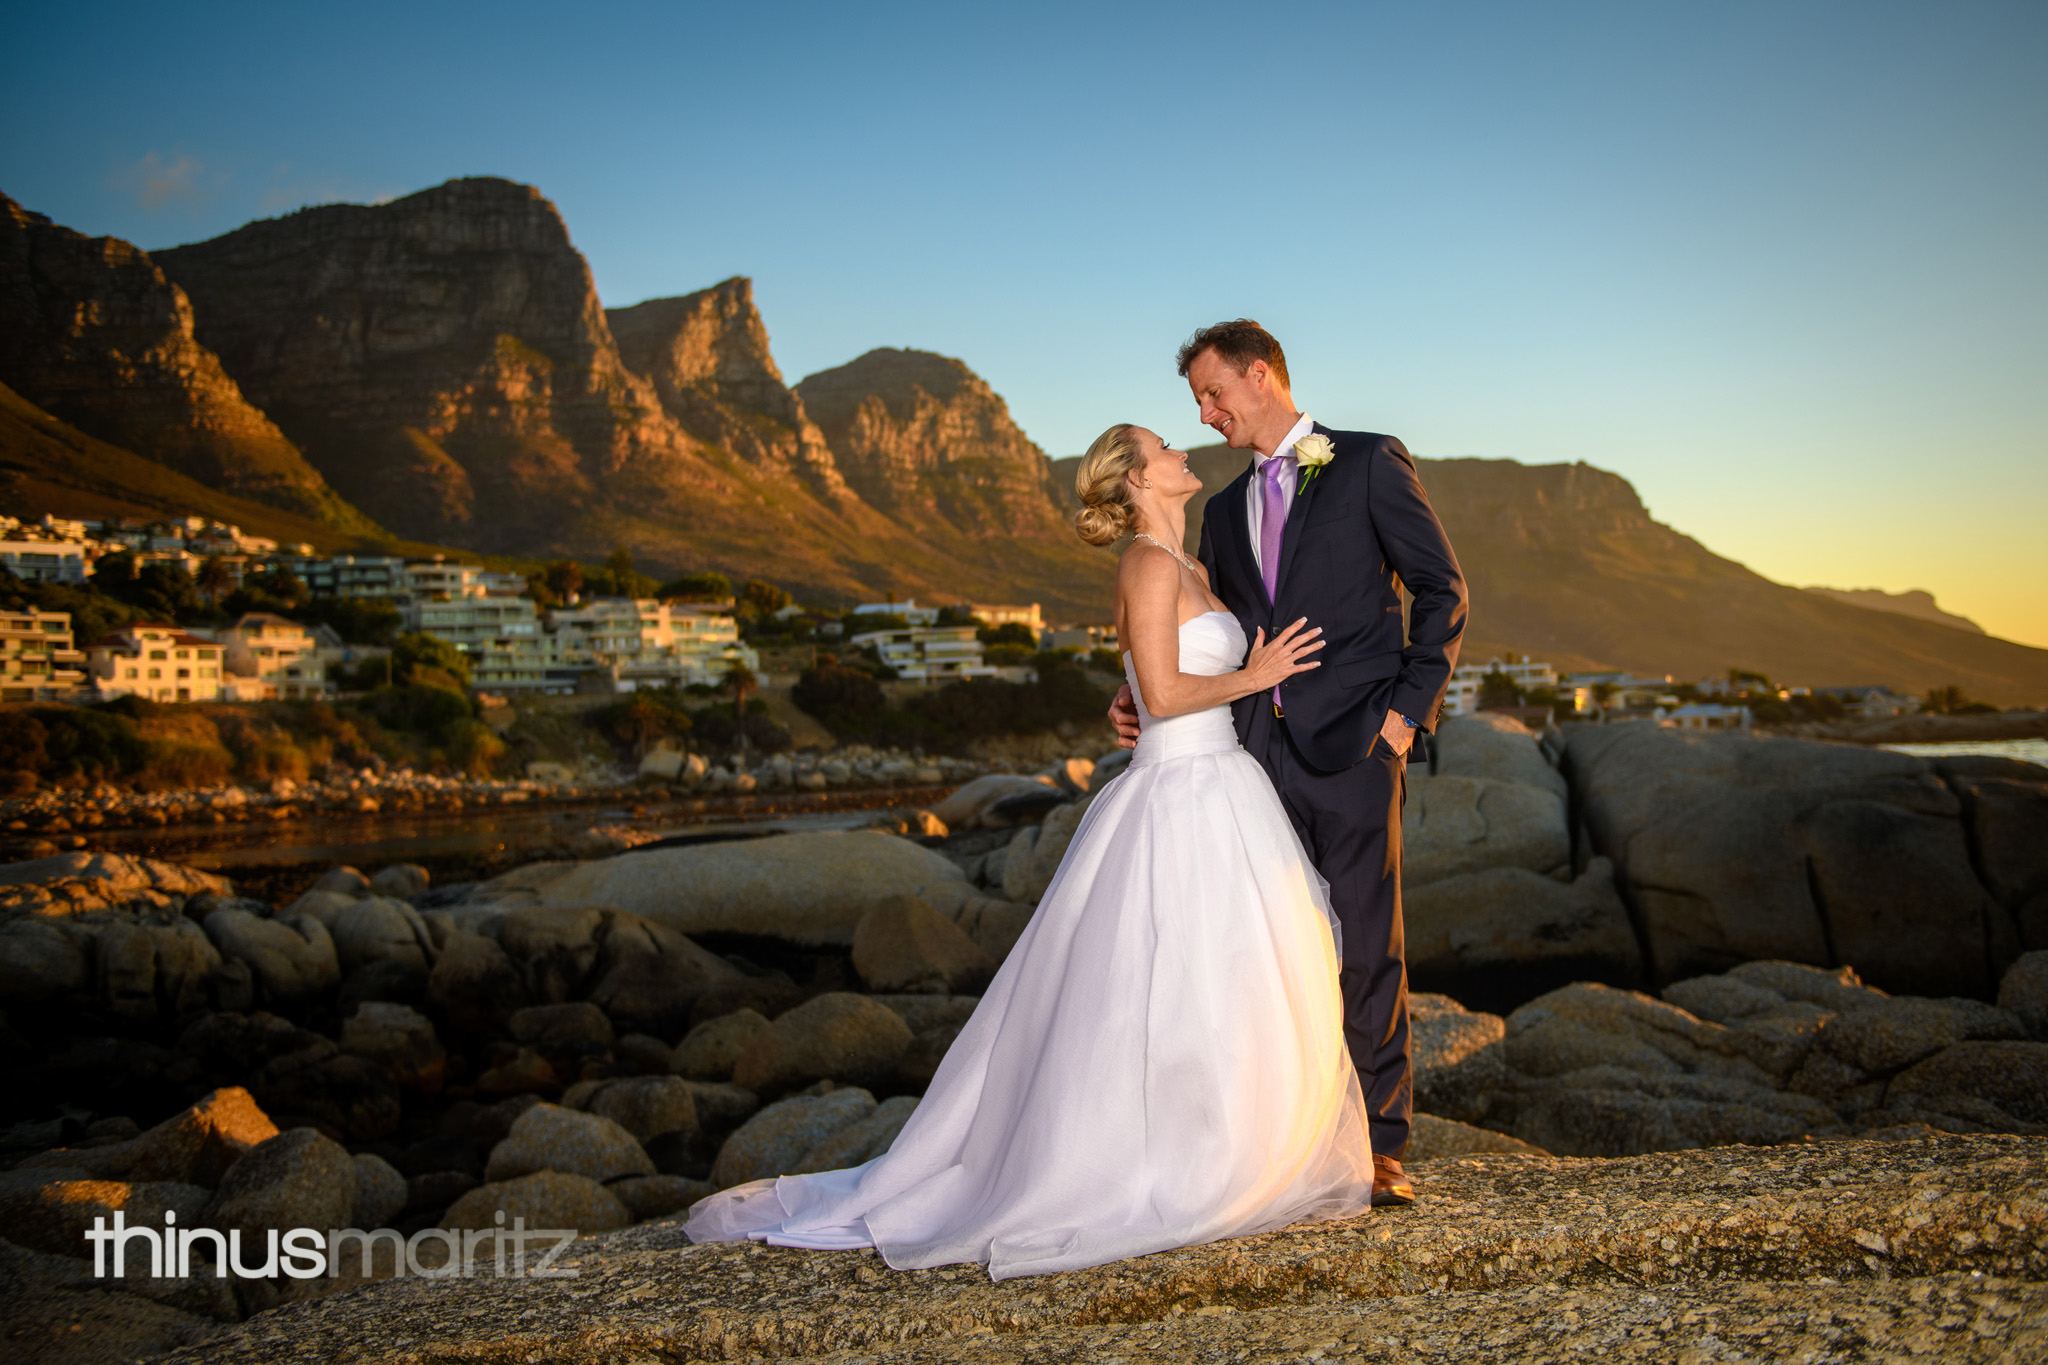 20190203-thinus-maritz-photography-catherine-and-garth-wedding-12-apostles-camps-bay.jpg